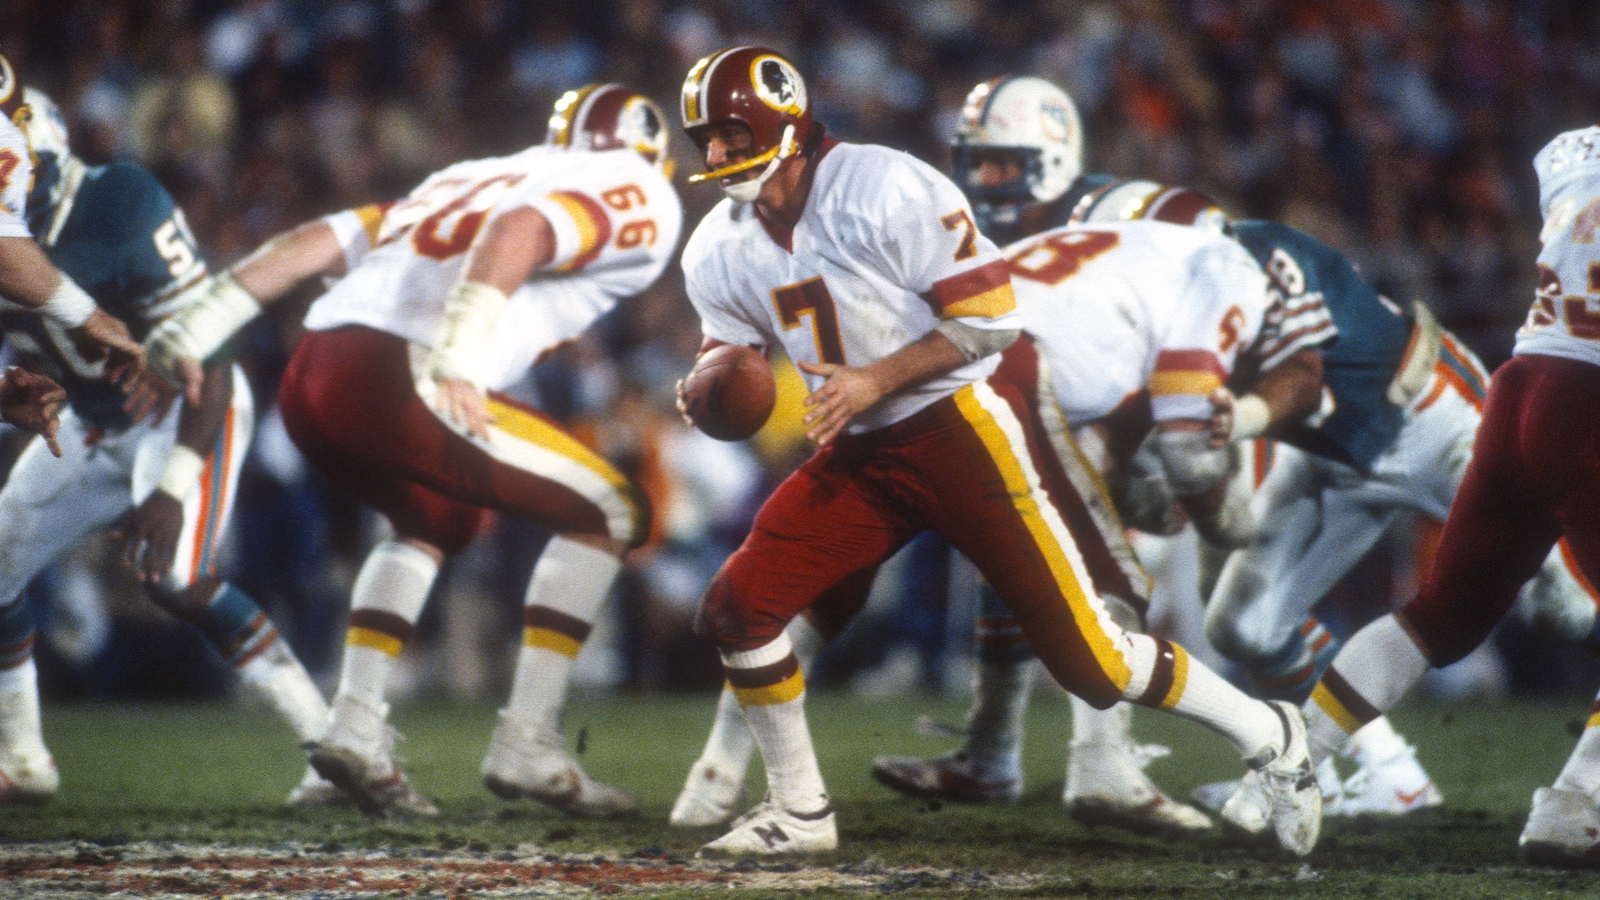 Image - Channel 4's coverage of the NFL started in 1982, which culminated in a Washington win over Miami at the Super Bowl